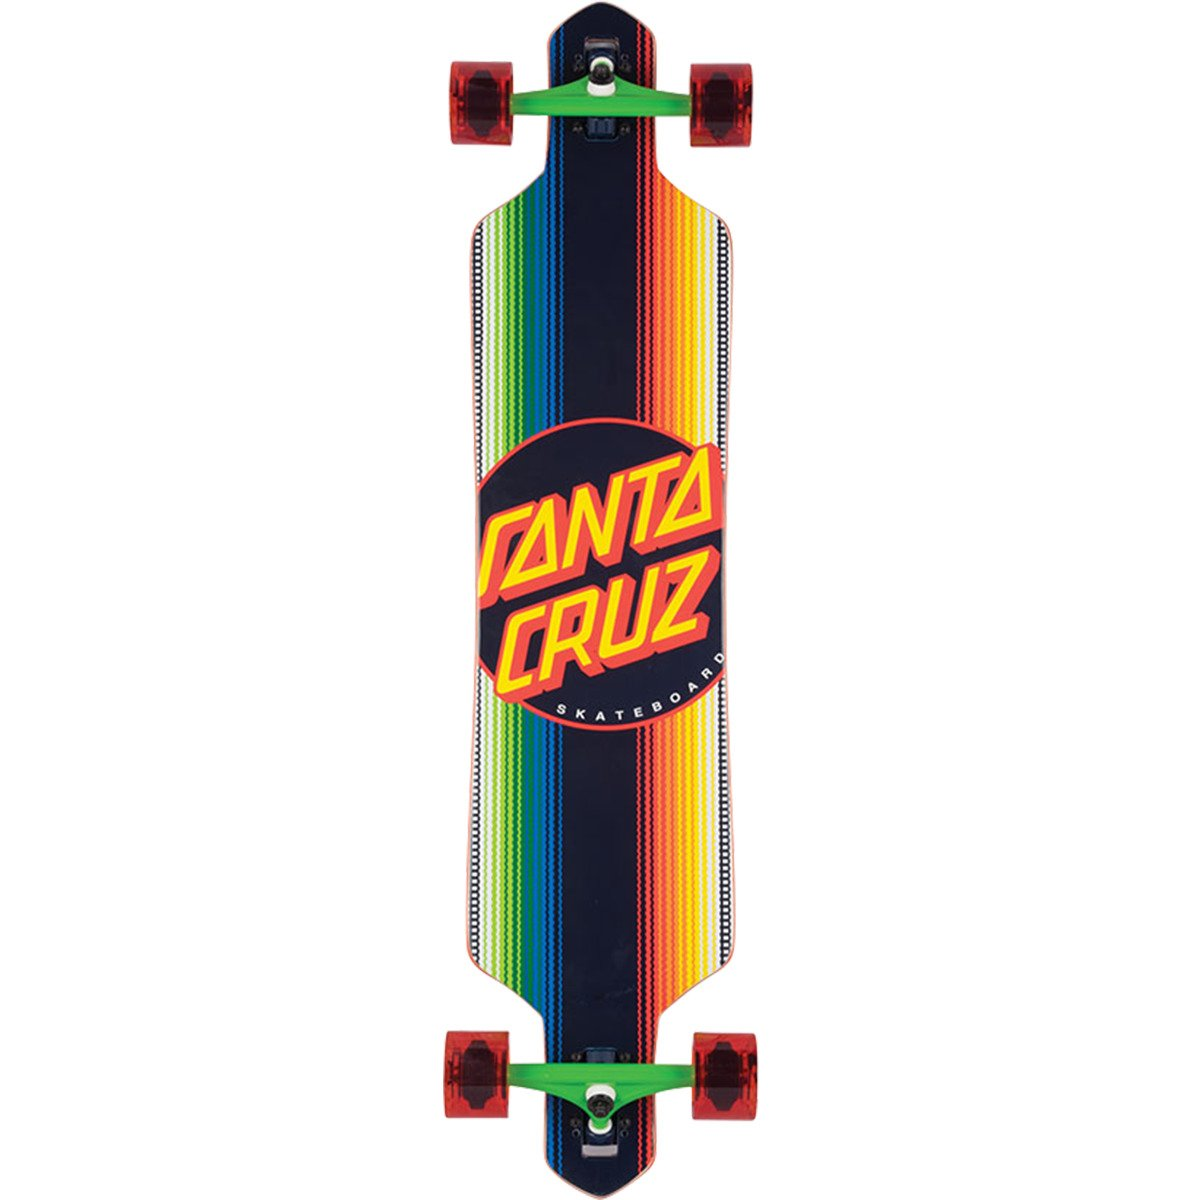 Santa Cruz Skateboards Jorongo Dot Drop Through Longboard Complete Skateboard - 9.2'' x 41'' by Santa Cruz